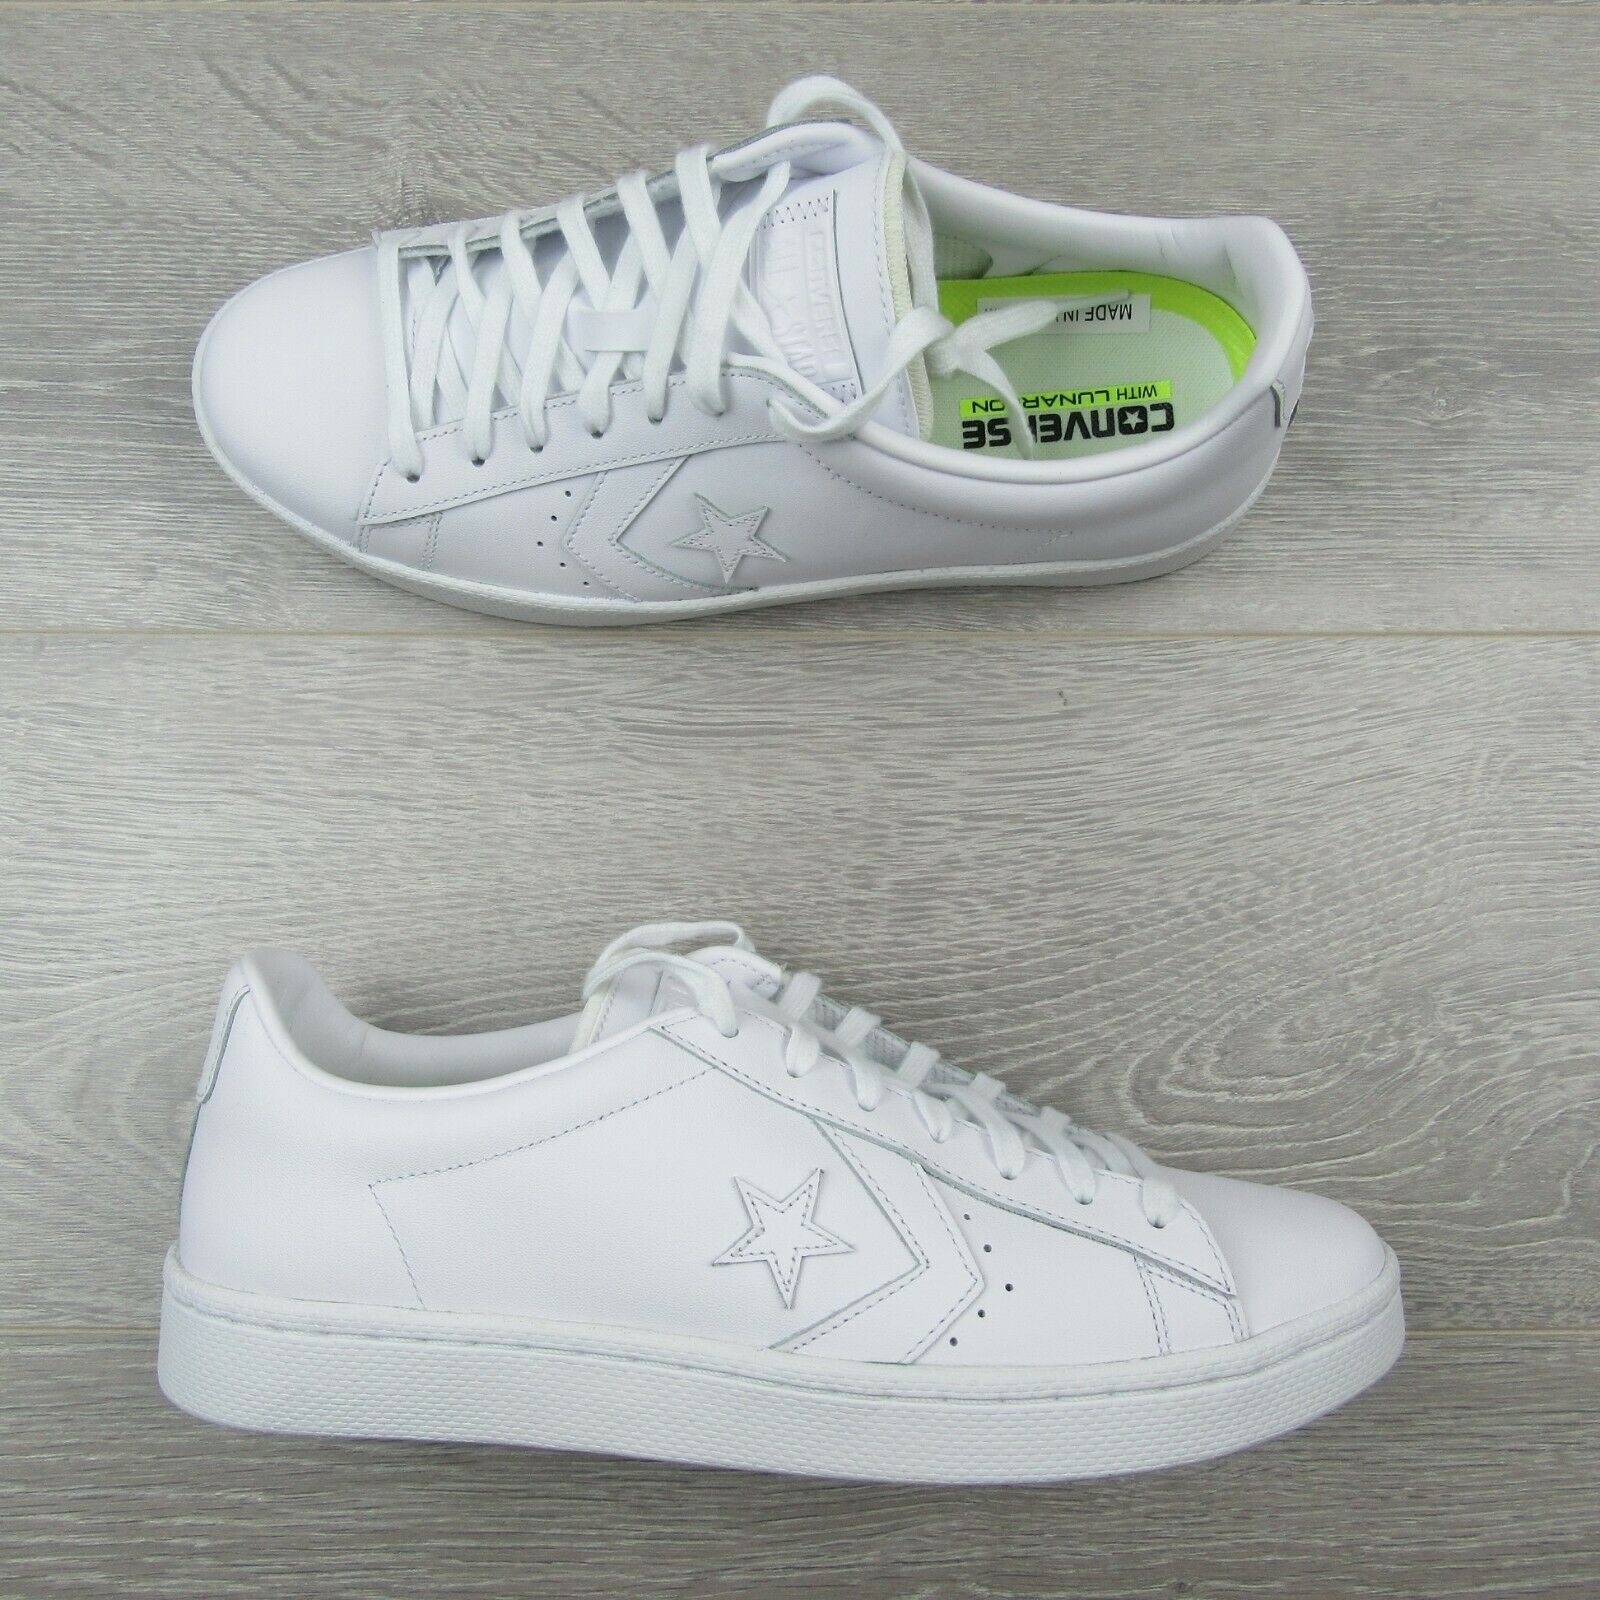 Converse Pro Leather Ox Low Triple White Shoes Size 11 Mens 155319C New image 3